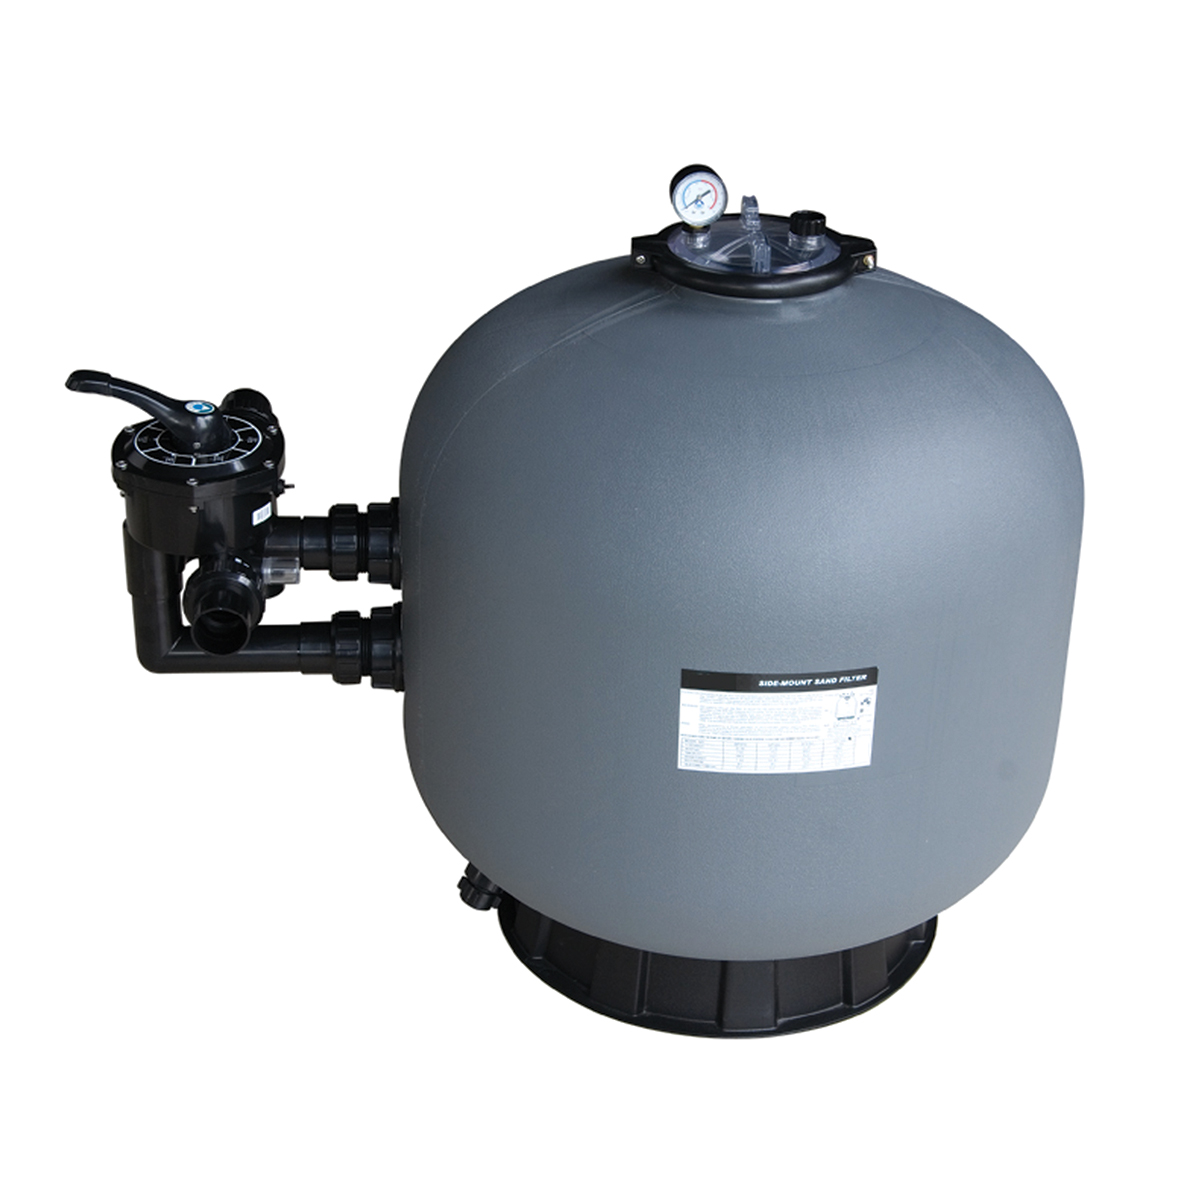 Buy Acqua Source sand filters in Dubai UAE